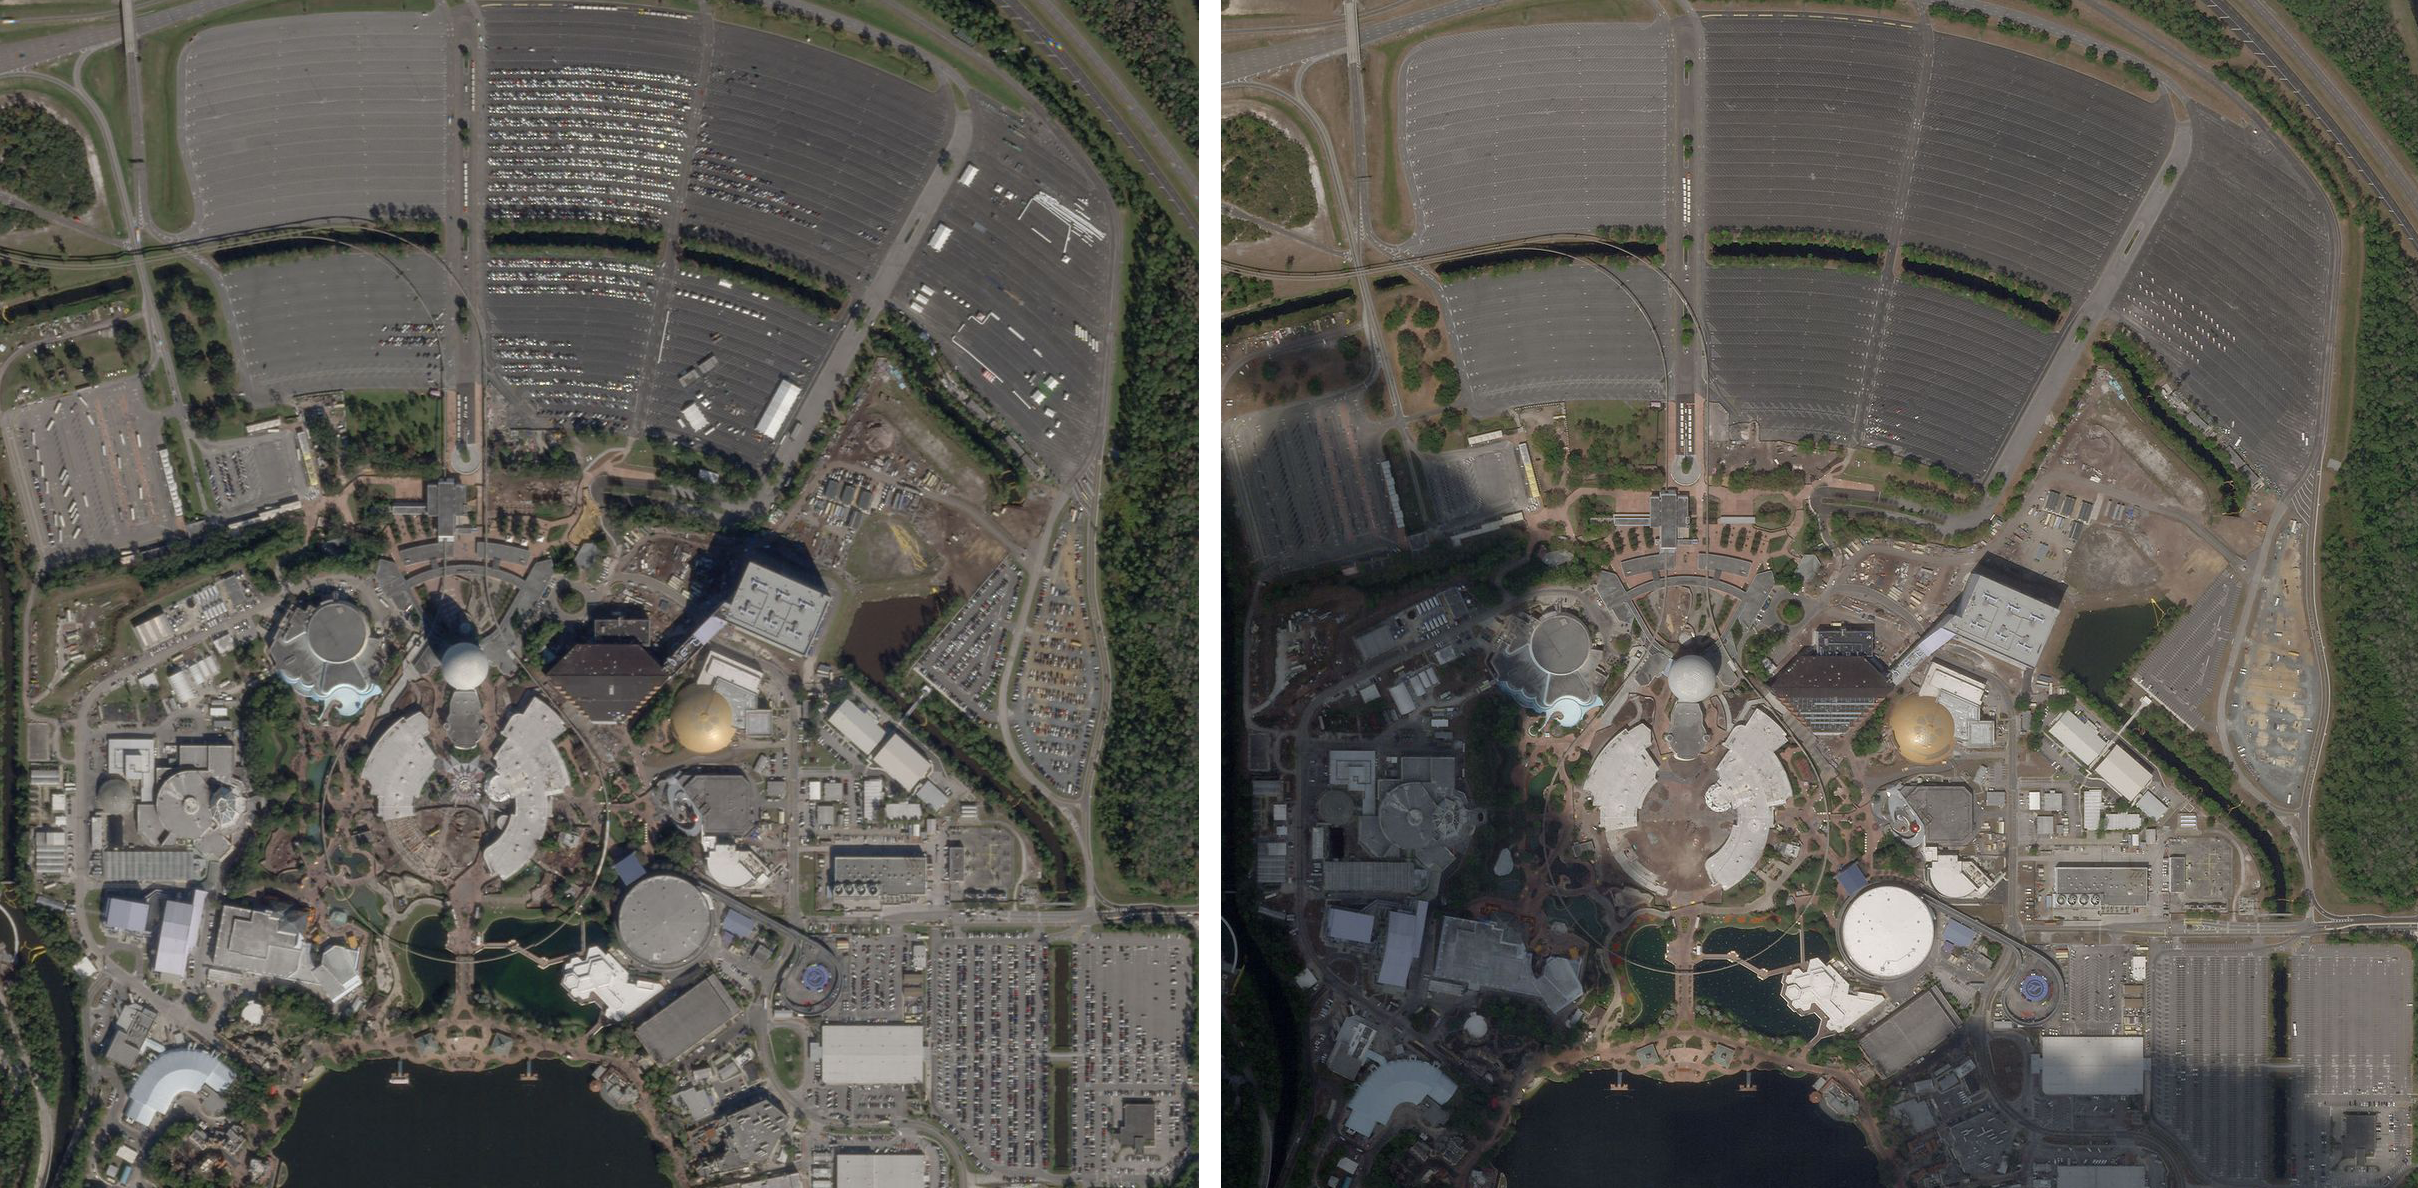 Epcot Center in Bay Lake Florida on January 6, 2020 (left) is full of park goers cars. Since COVID-19 safety measures were instated by Walt Disney Co. on March 18, 2020, the lots have continued to be empty (right). © 2020, Planet Labs Inc. All Rights Reserved.